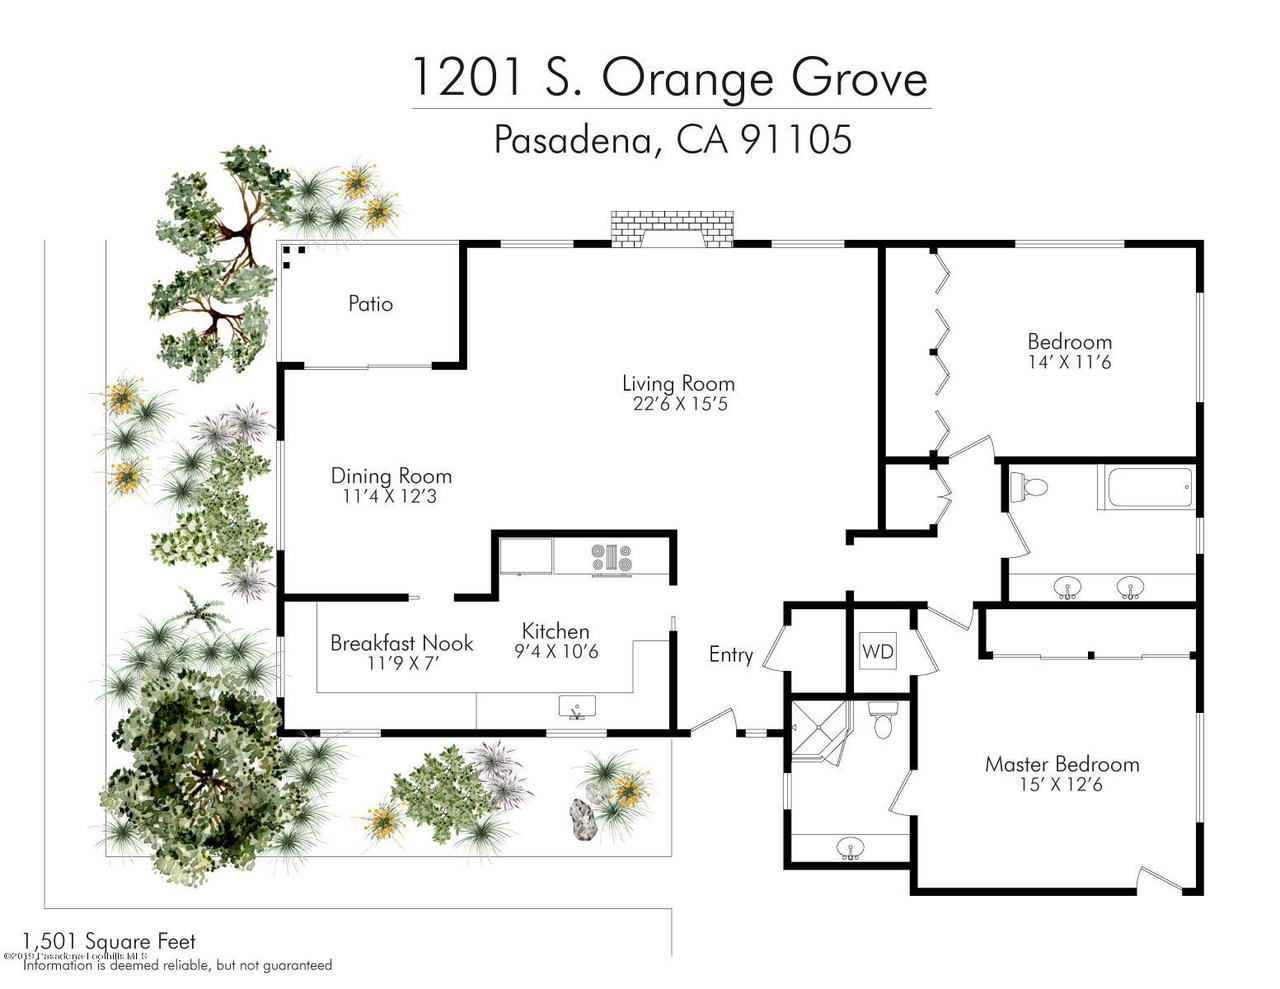 1201 ORANGE GROVE, Pasadena, CA 91105 - 1201-Orange-Grove Floor Plan 1501